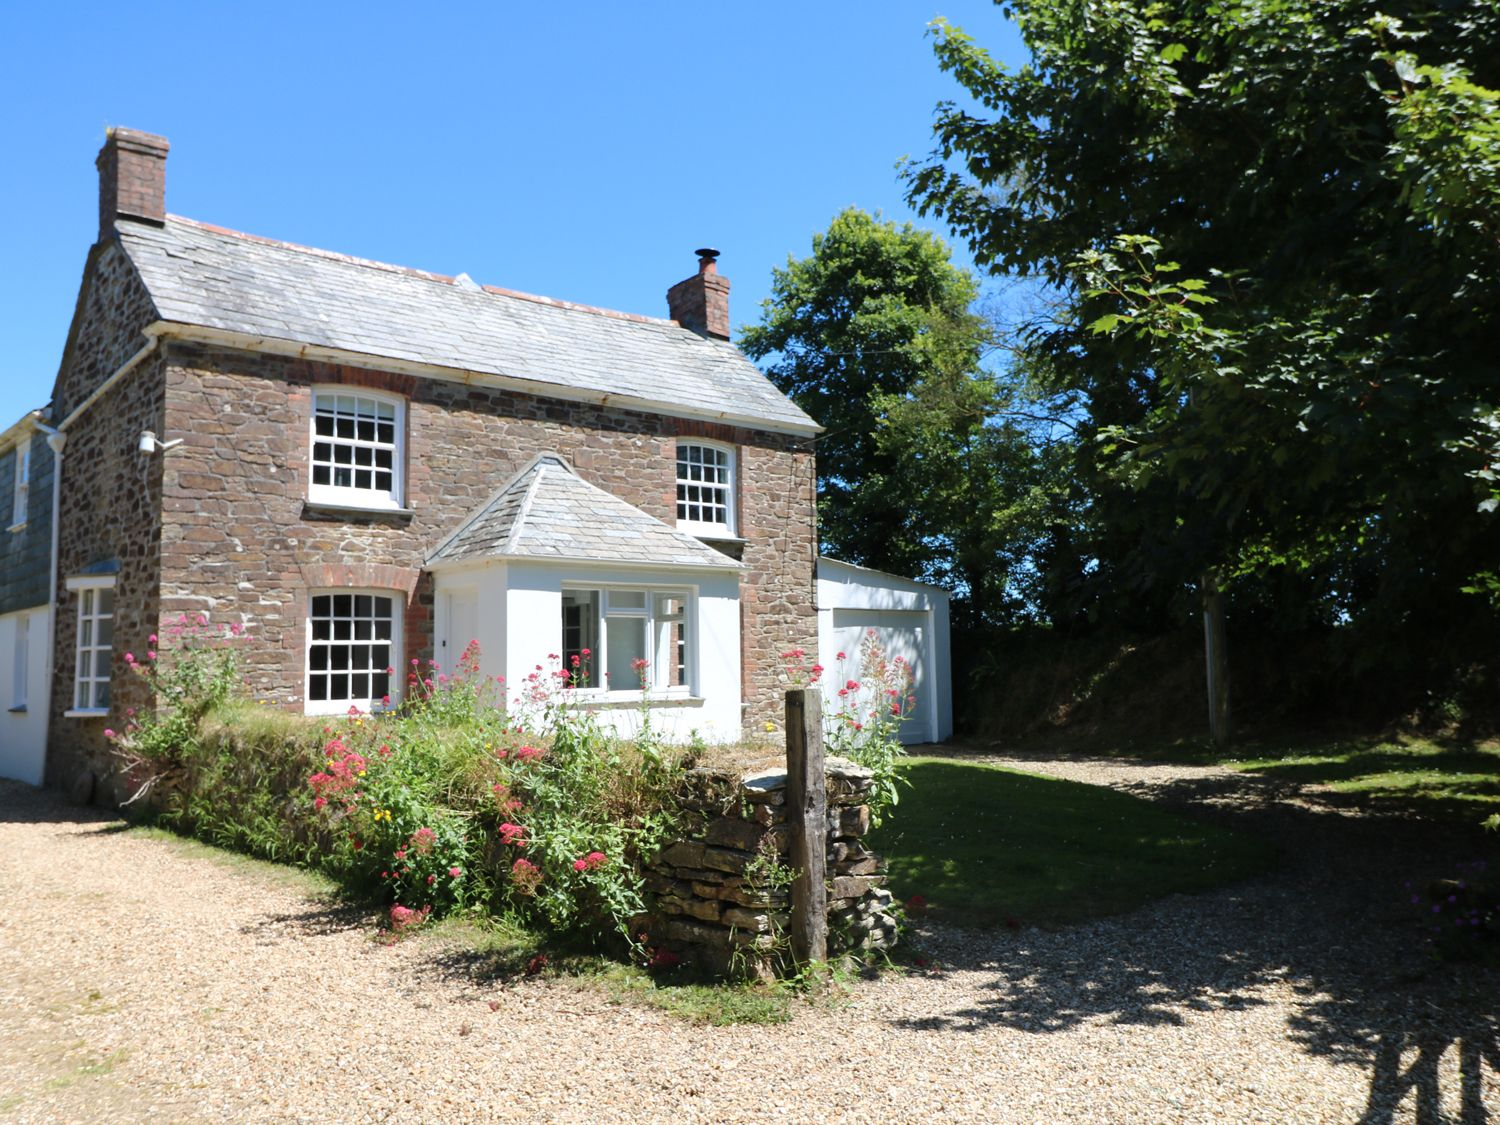 Trenouth Cottage, St Merryn, Cornwall